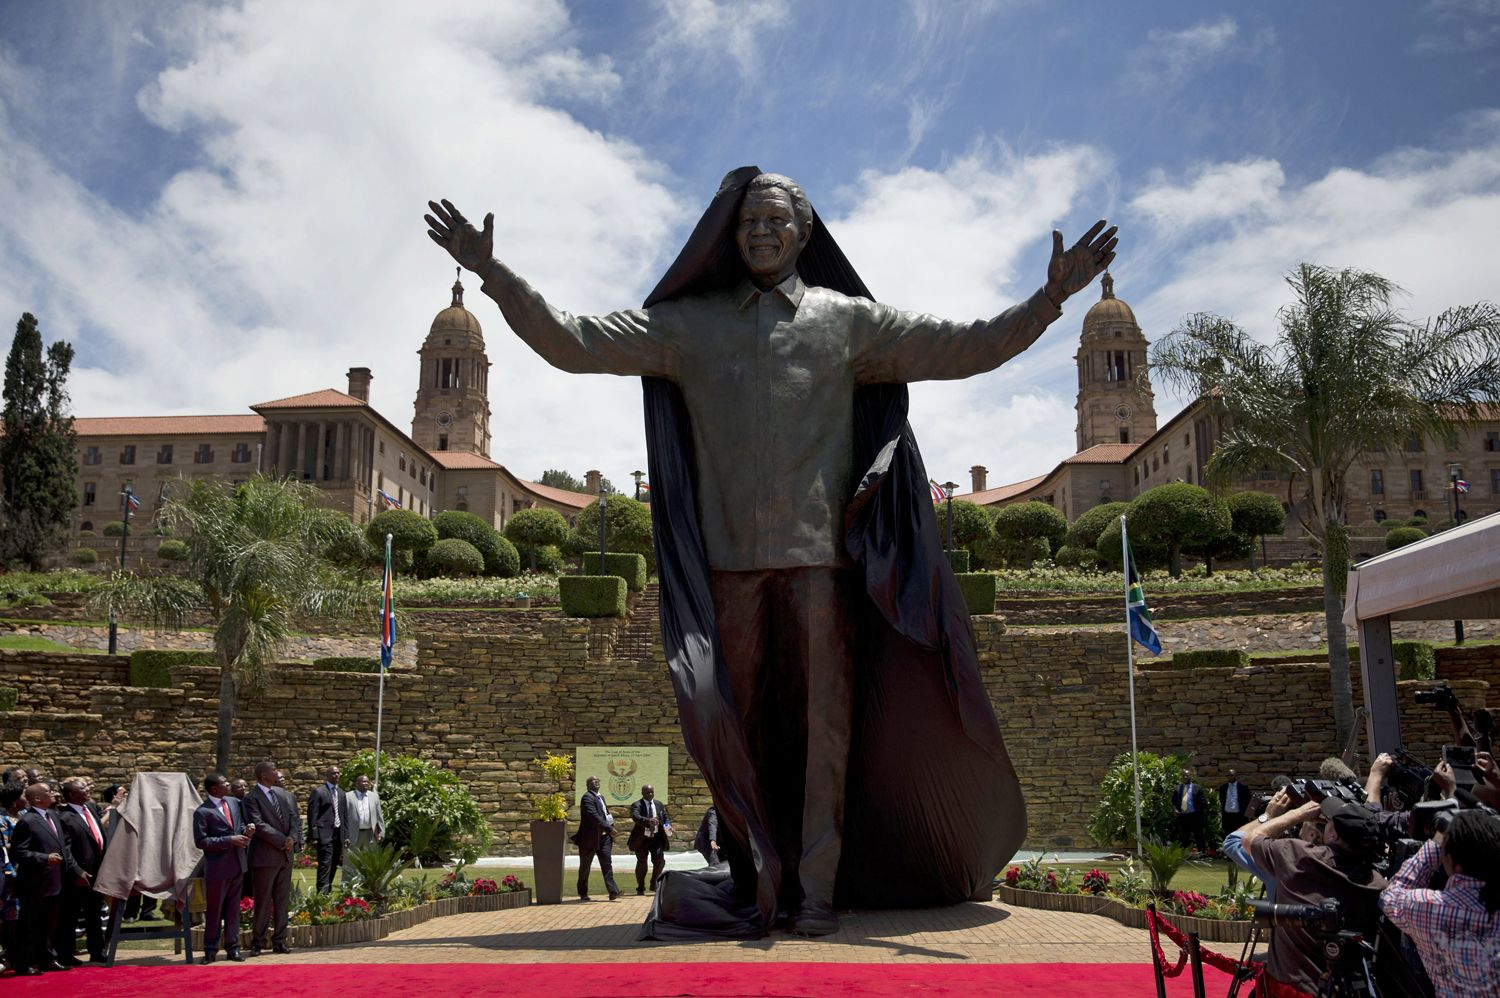 30-foot statue of Nelson Mandela unveiled in Pretoria, South Africa  (Photo: Matt Dunham / AP)